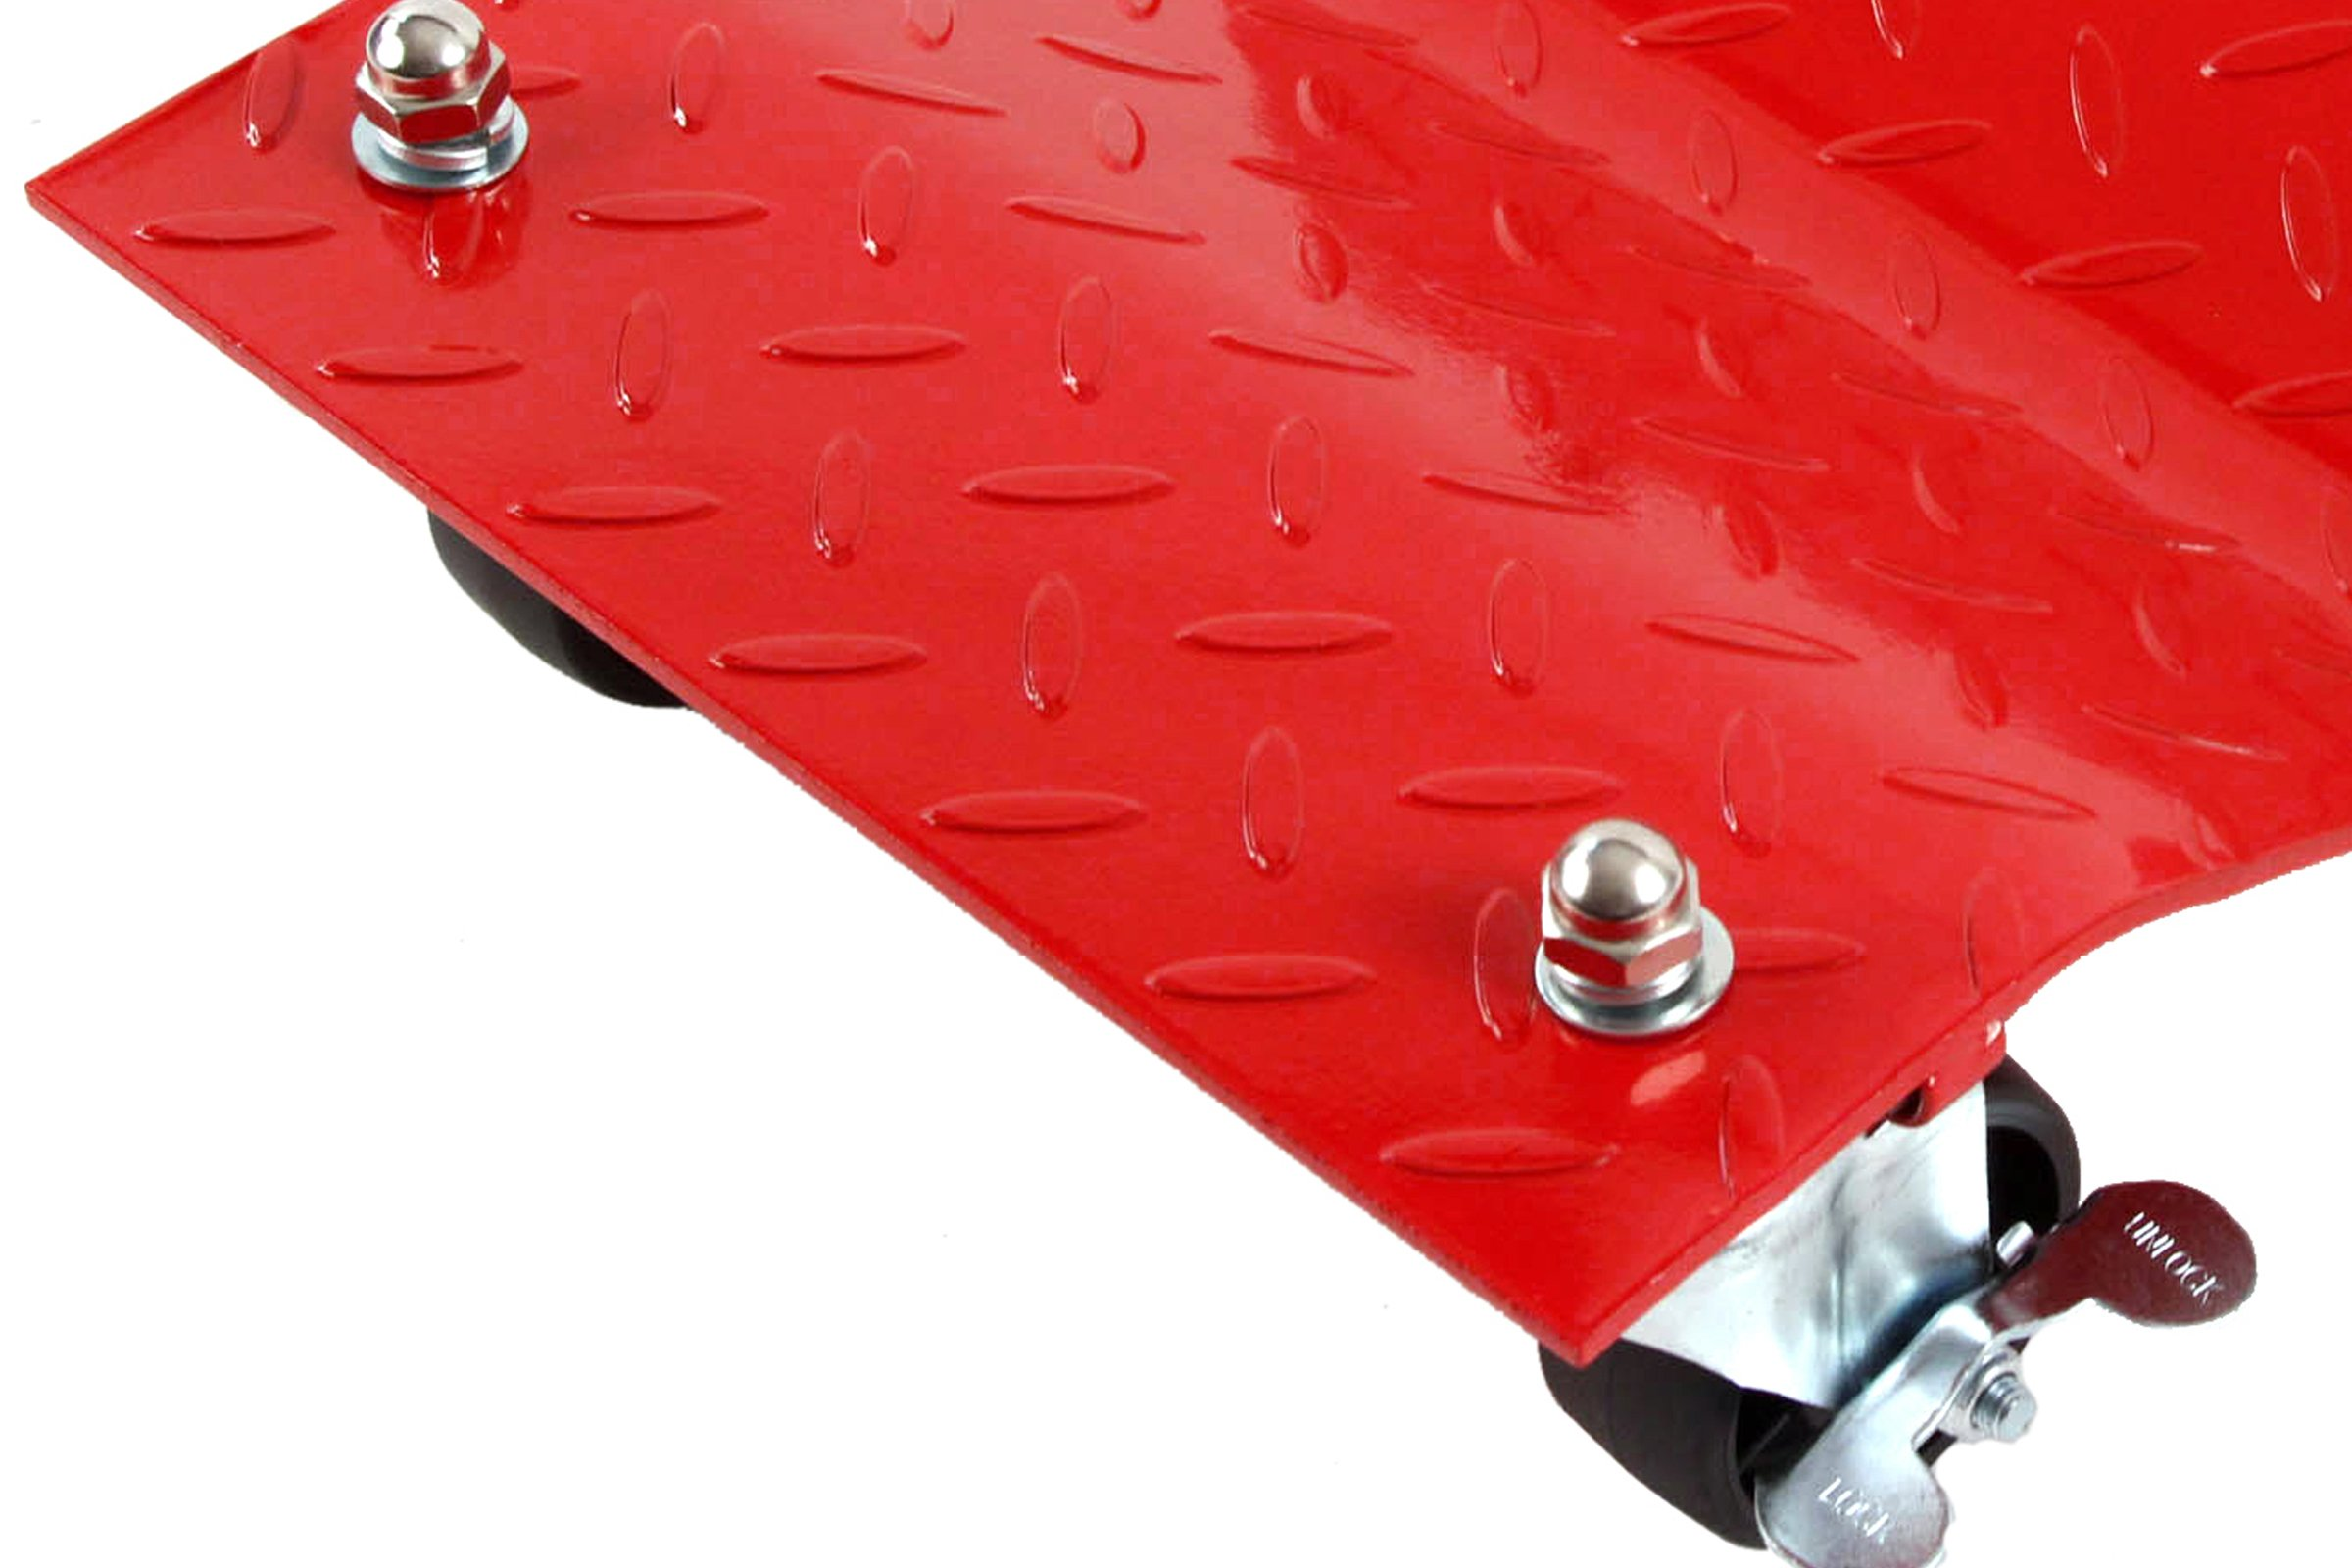 4 - Red 12'' Tire Premium Skates Wheel Car Dolly Ball Bearings Skate Makes Moving A Car Easy Furniture Movers by Red Hound Auto (Image #2)